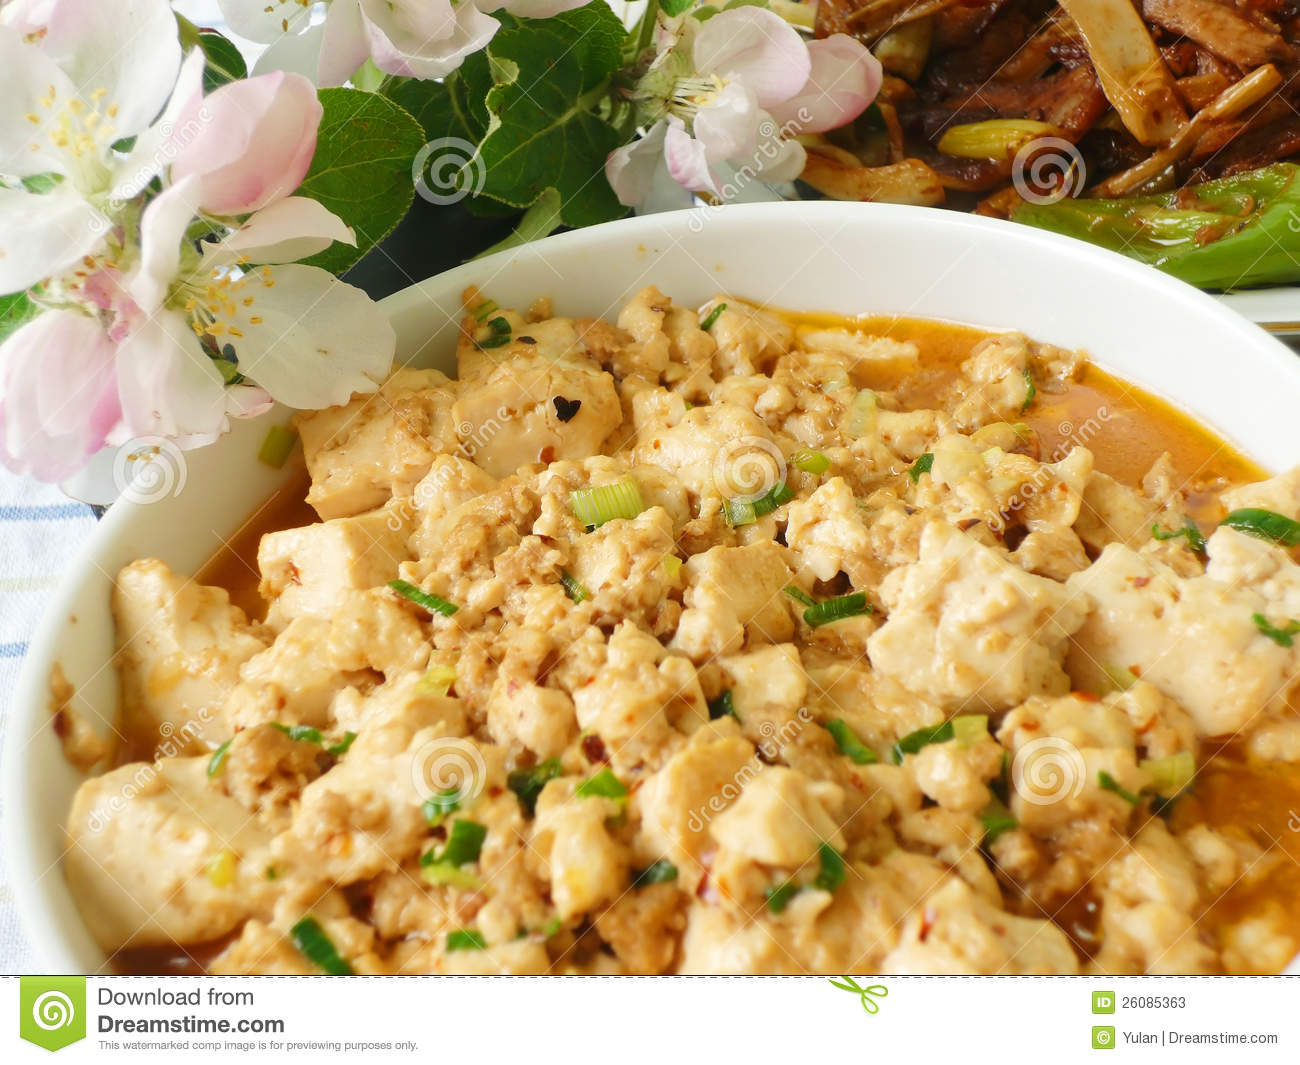 Chinese Food Specialty - hot-and-spicy Mapo Bean Curd, Tofu.